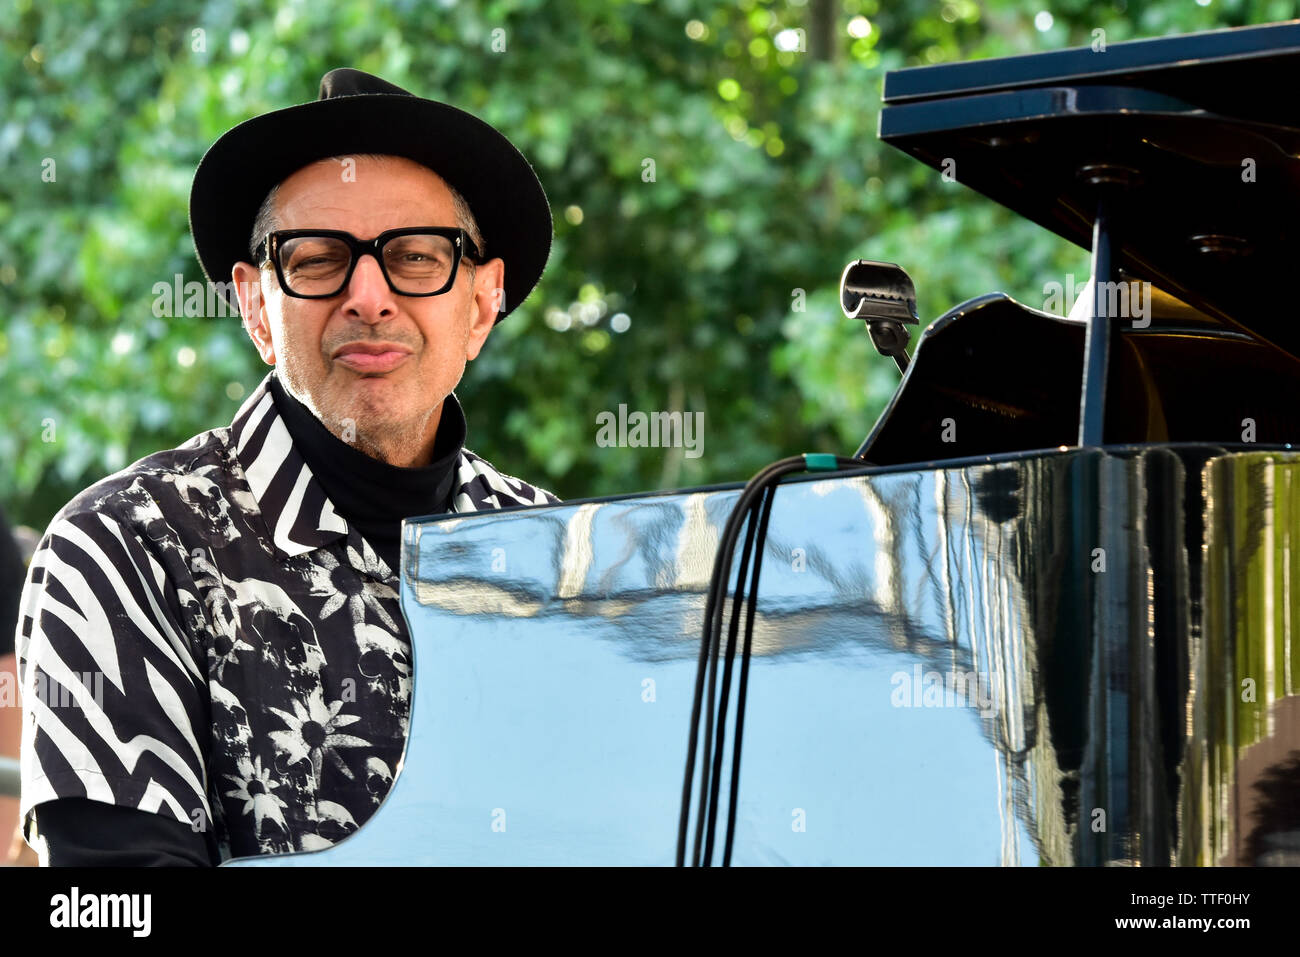 Jeff Goldbloom performing on stage at the BottleRock Festival 2019, Napa Valley, California. Stock Photo